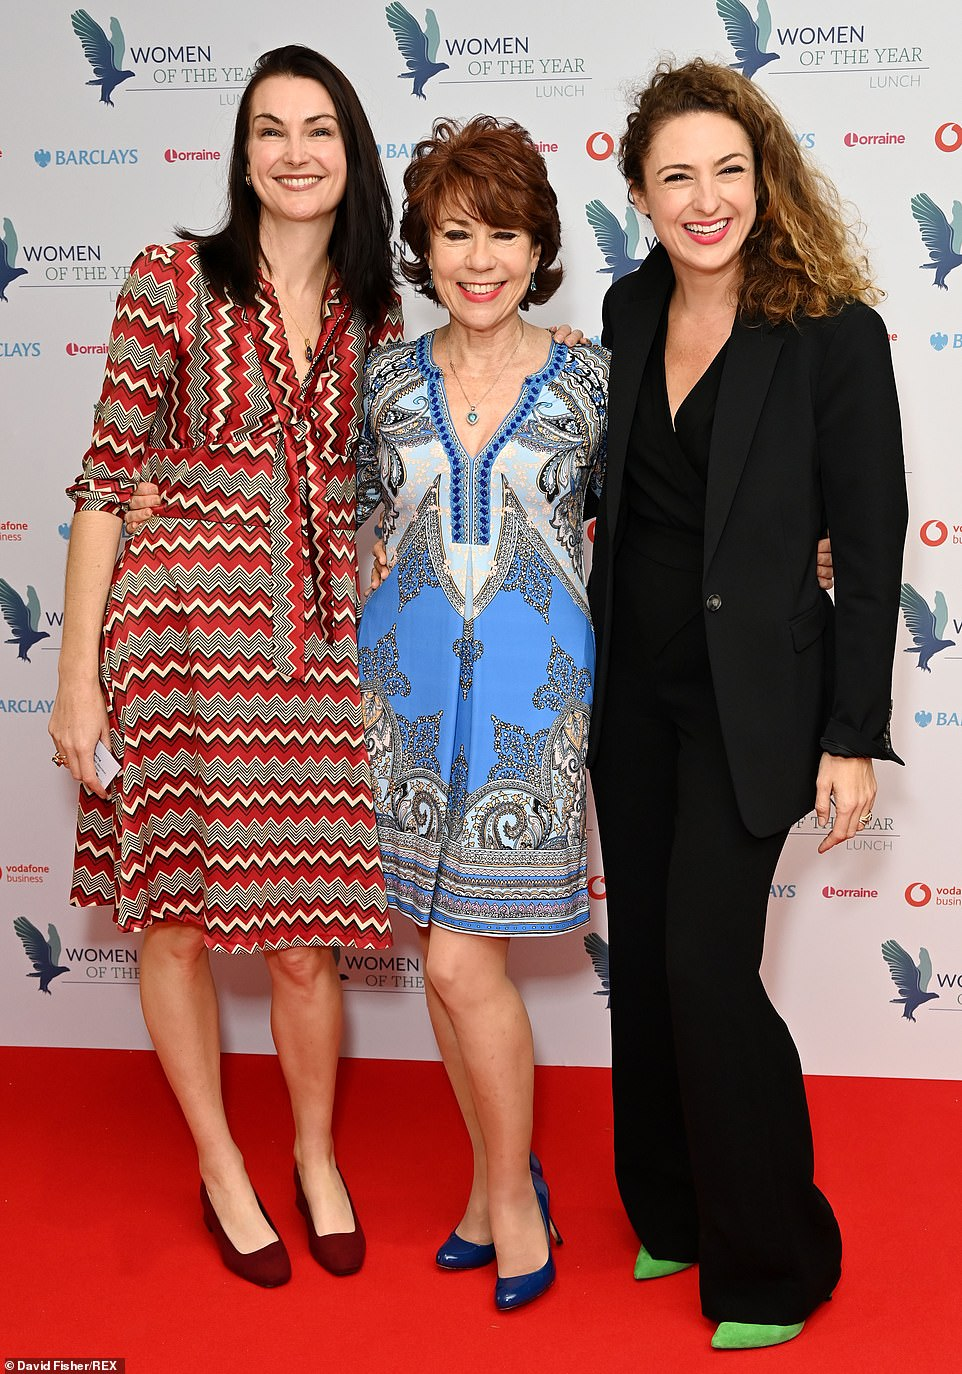 Three's company: (L-R)Jo Baring, Kathy Lette and and Katrin McMillan pose for a photo at Monday's event